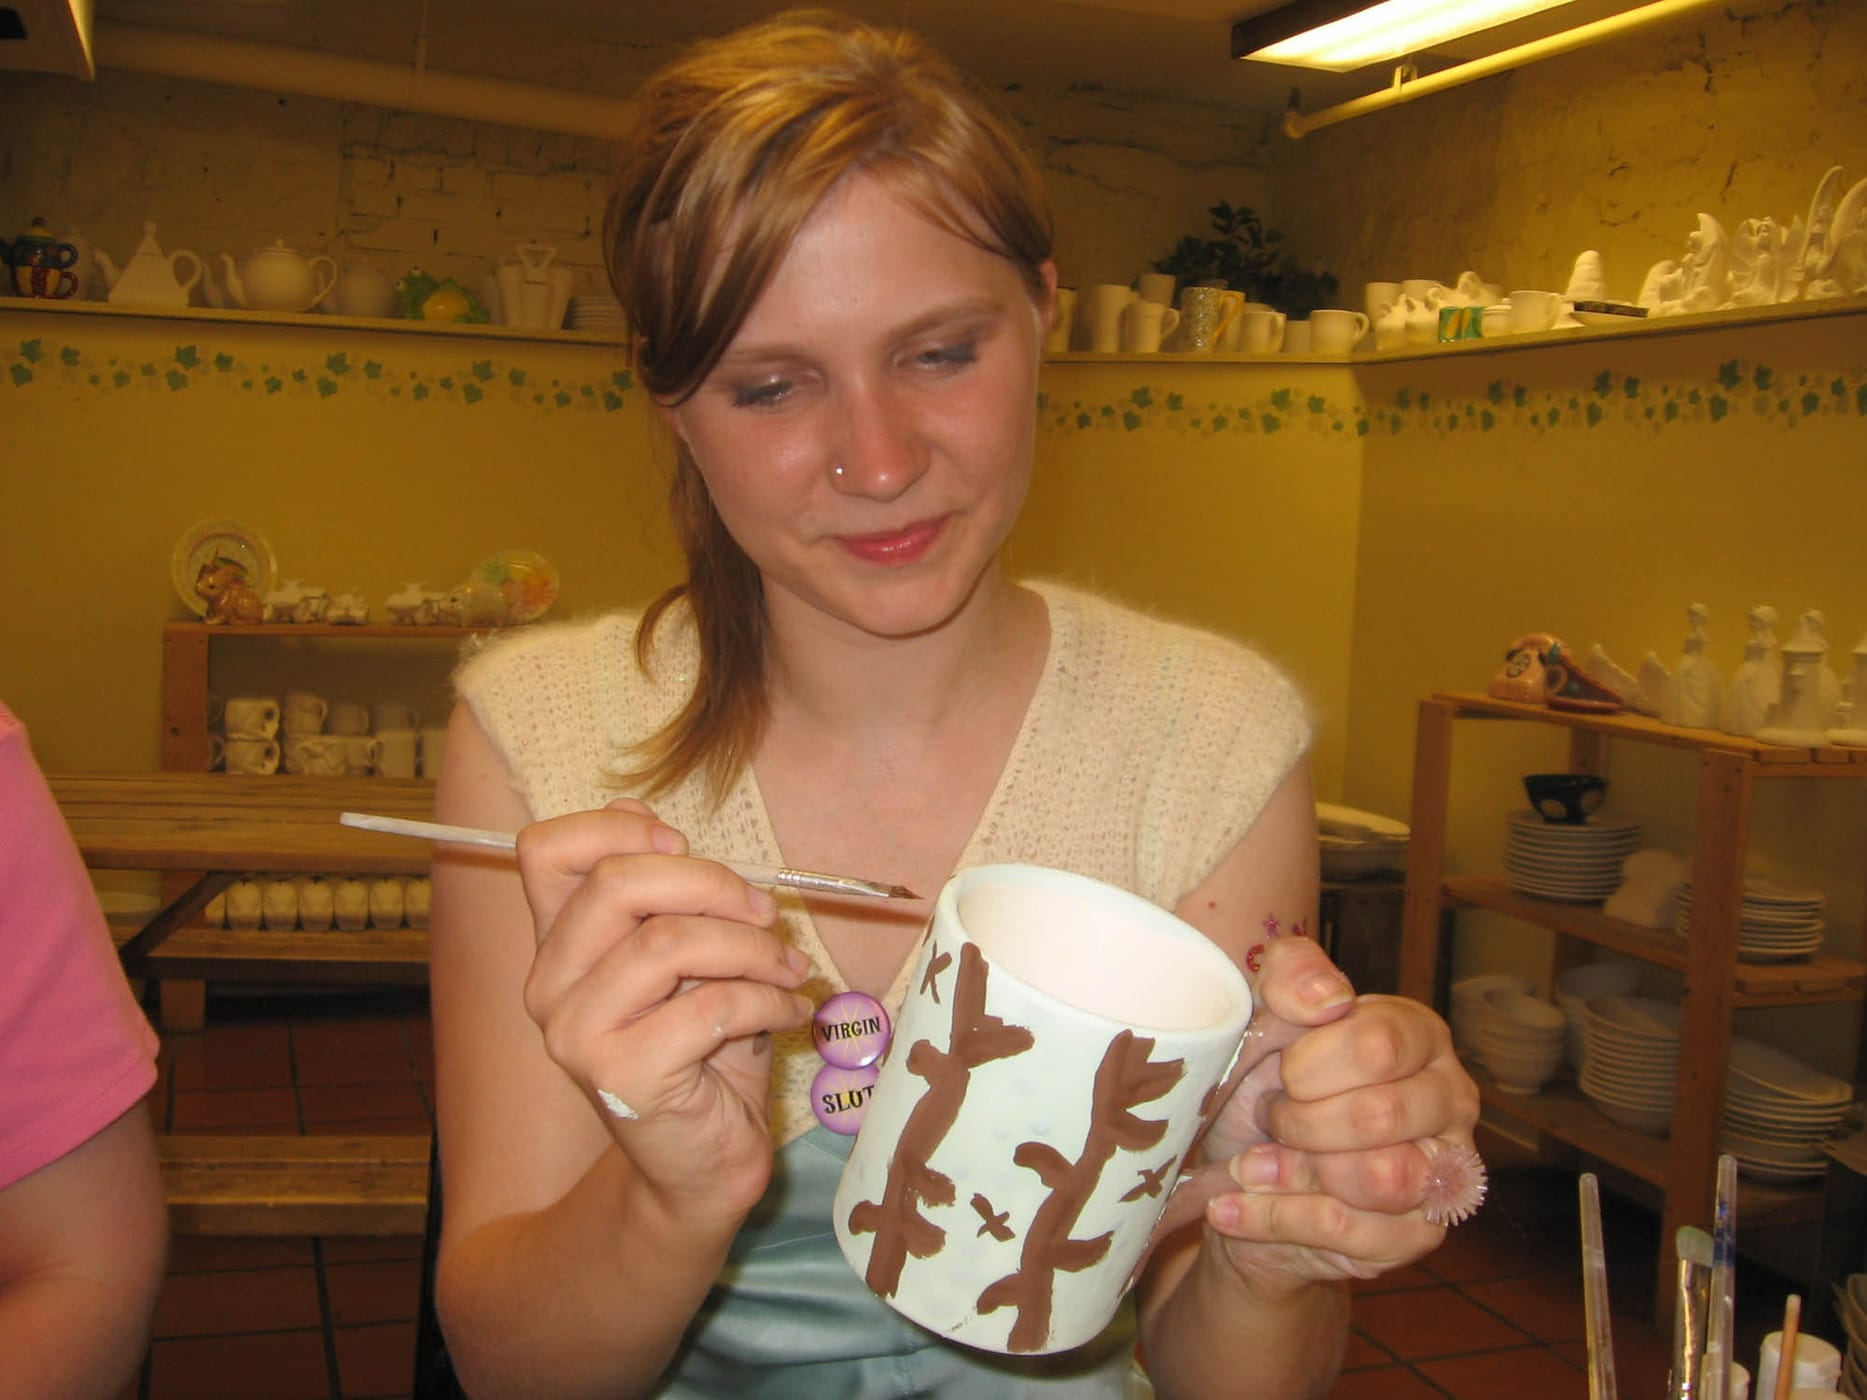 Painting a mug at a paint your own pottery place